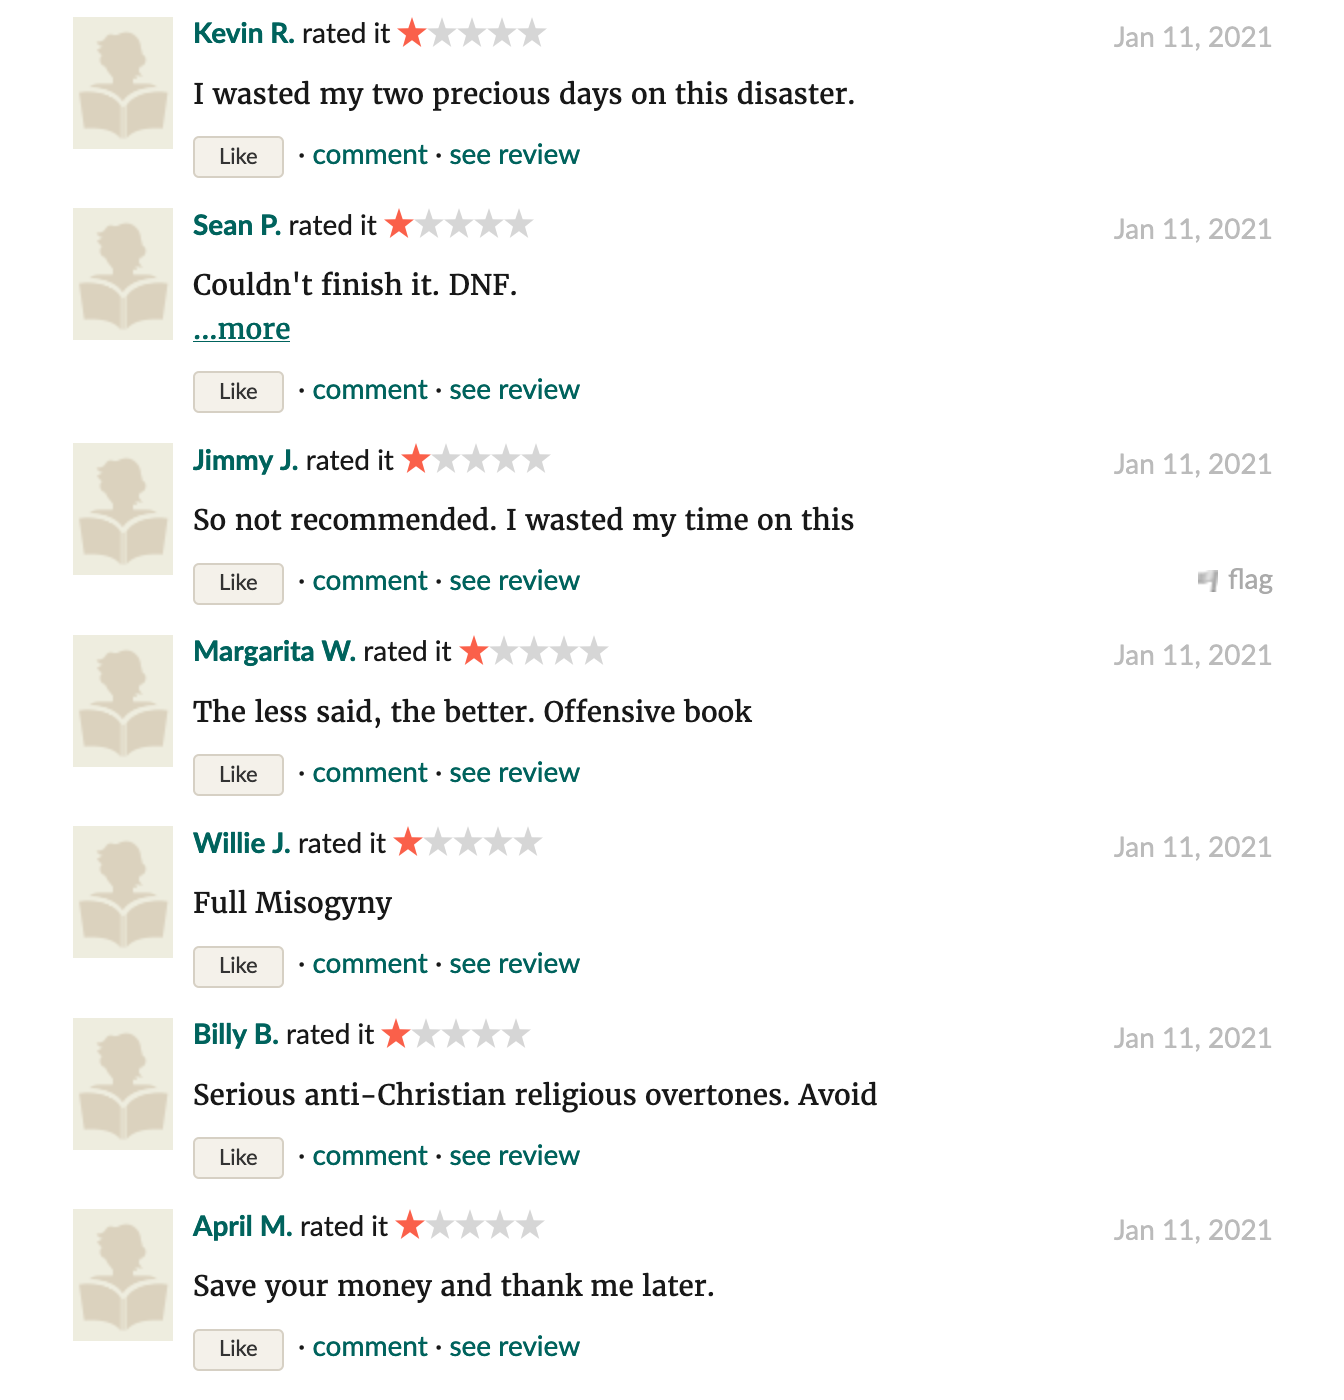 "Goodreads screenshot. Some of the 1-star reviews I got. Kevin R.: ""I wasted my two precious days on this disaster."" Sean P.: ""Couldn't finish it. DNF."" Jimmy J.: ""So not recommended. I wasted my time on this."" Mararita W.: ""The less said, the better. Offensive book"" Willie J.: ""Full Misogyny"" Billy B.: ""Serious anti-Christian overtones. Avoid"" April M.: ""Save your money and thank me later."""